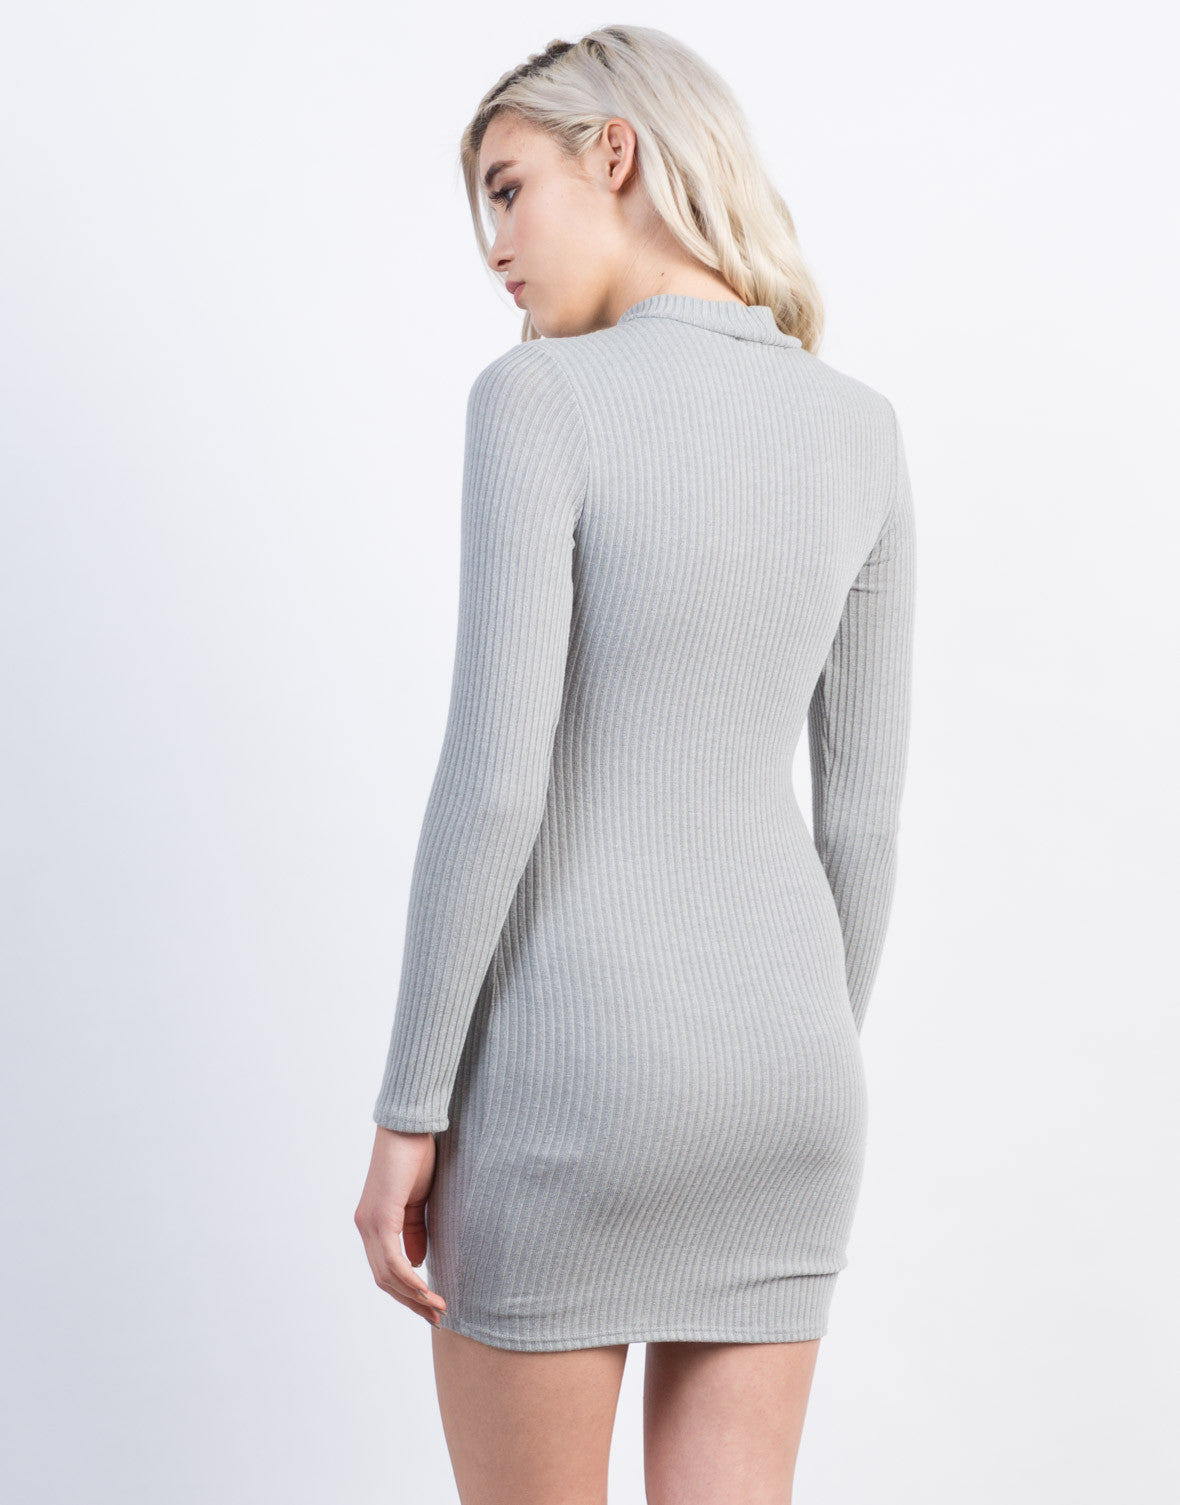 Back View of Knit Lace-Up Dress